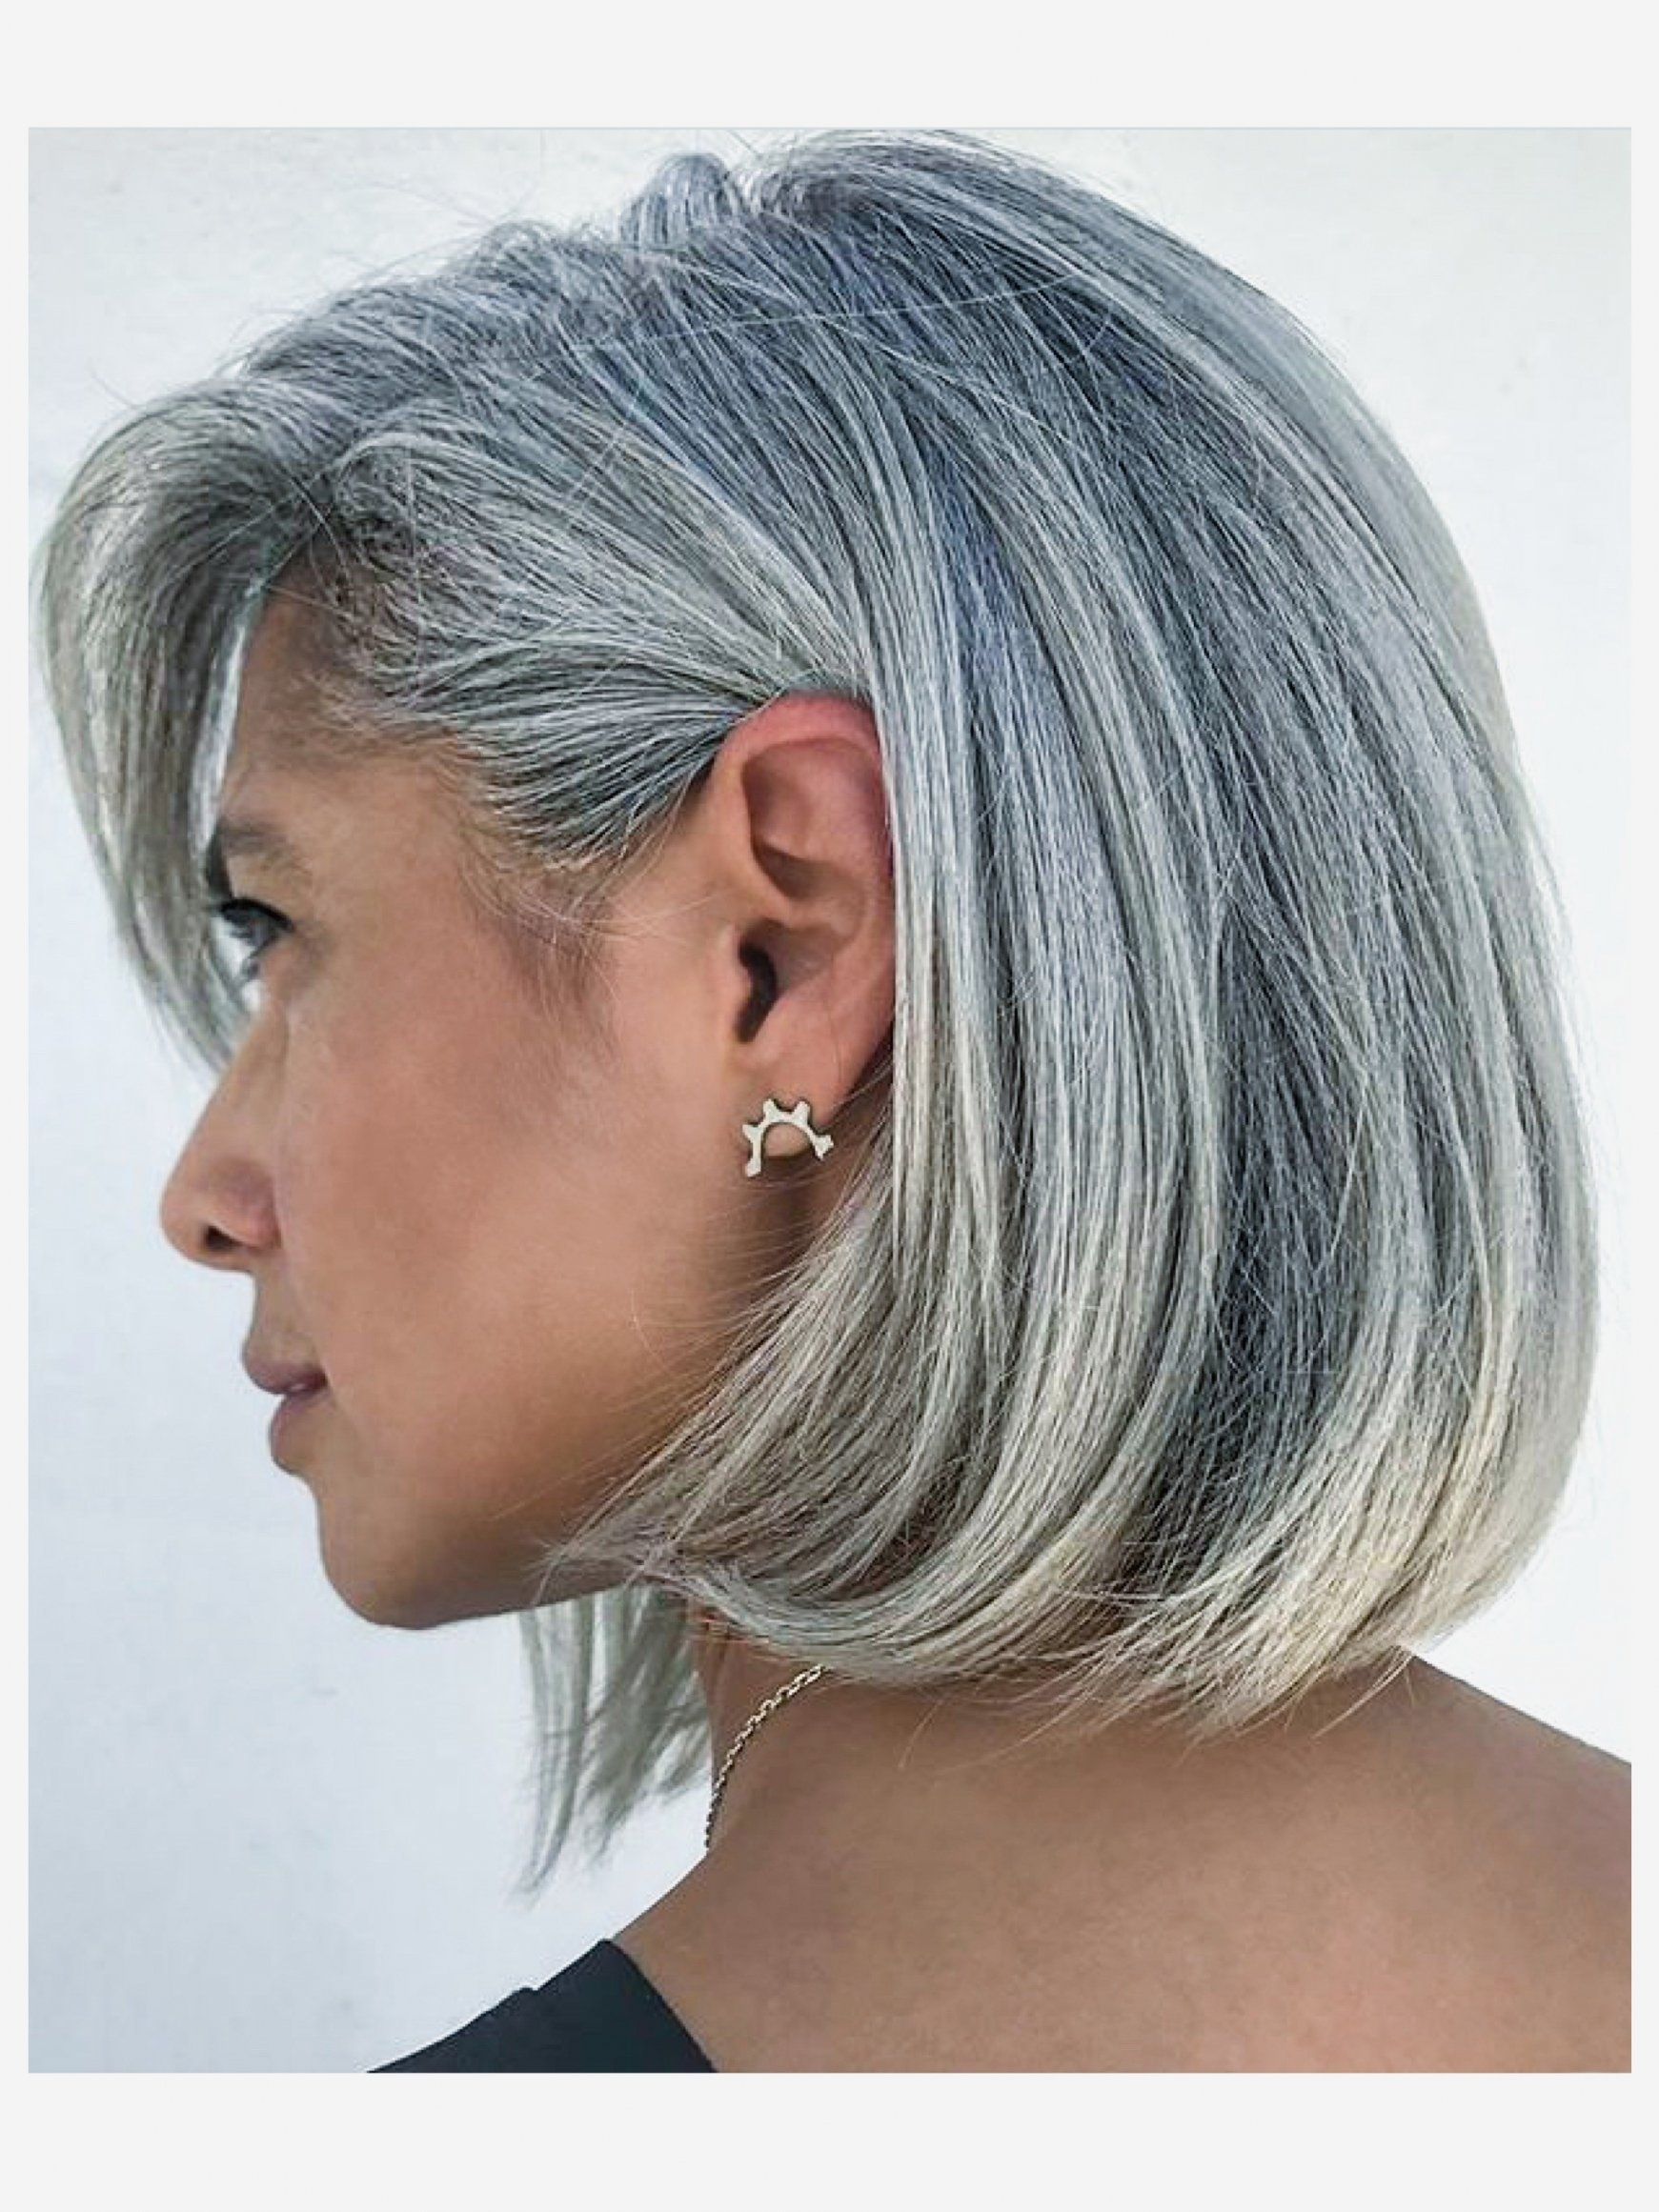 Short Hairstyles : Fresh Short Hairstyles For Thick Grey Hair New pertaining to Haircuts For Thick Grey Hair